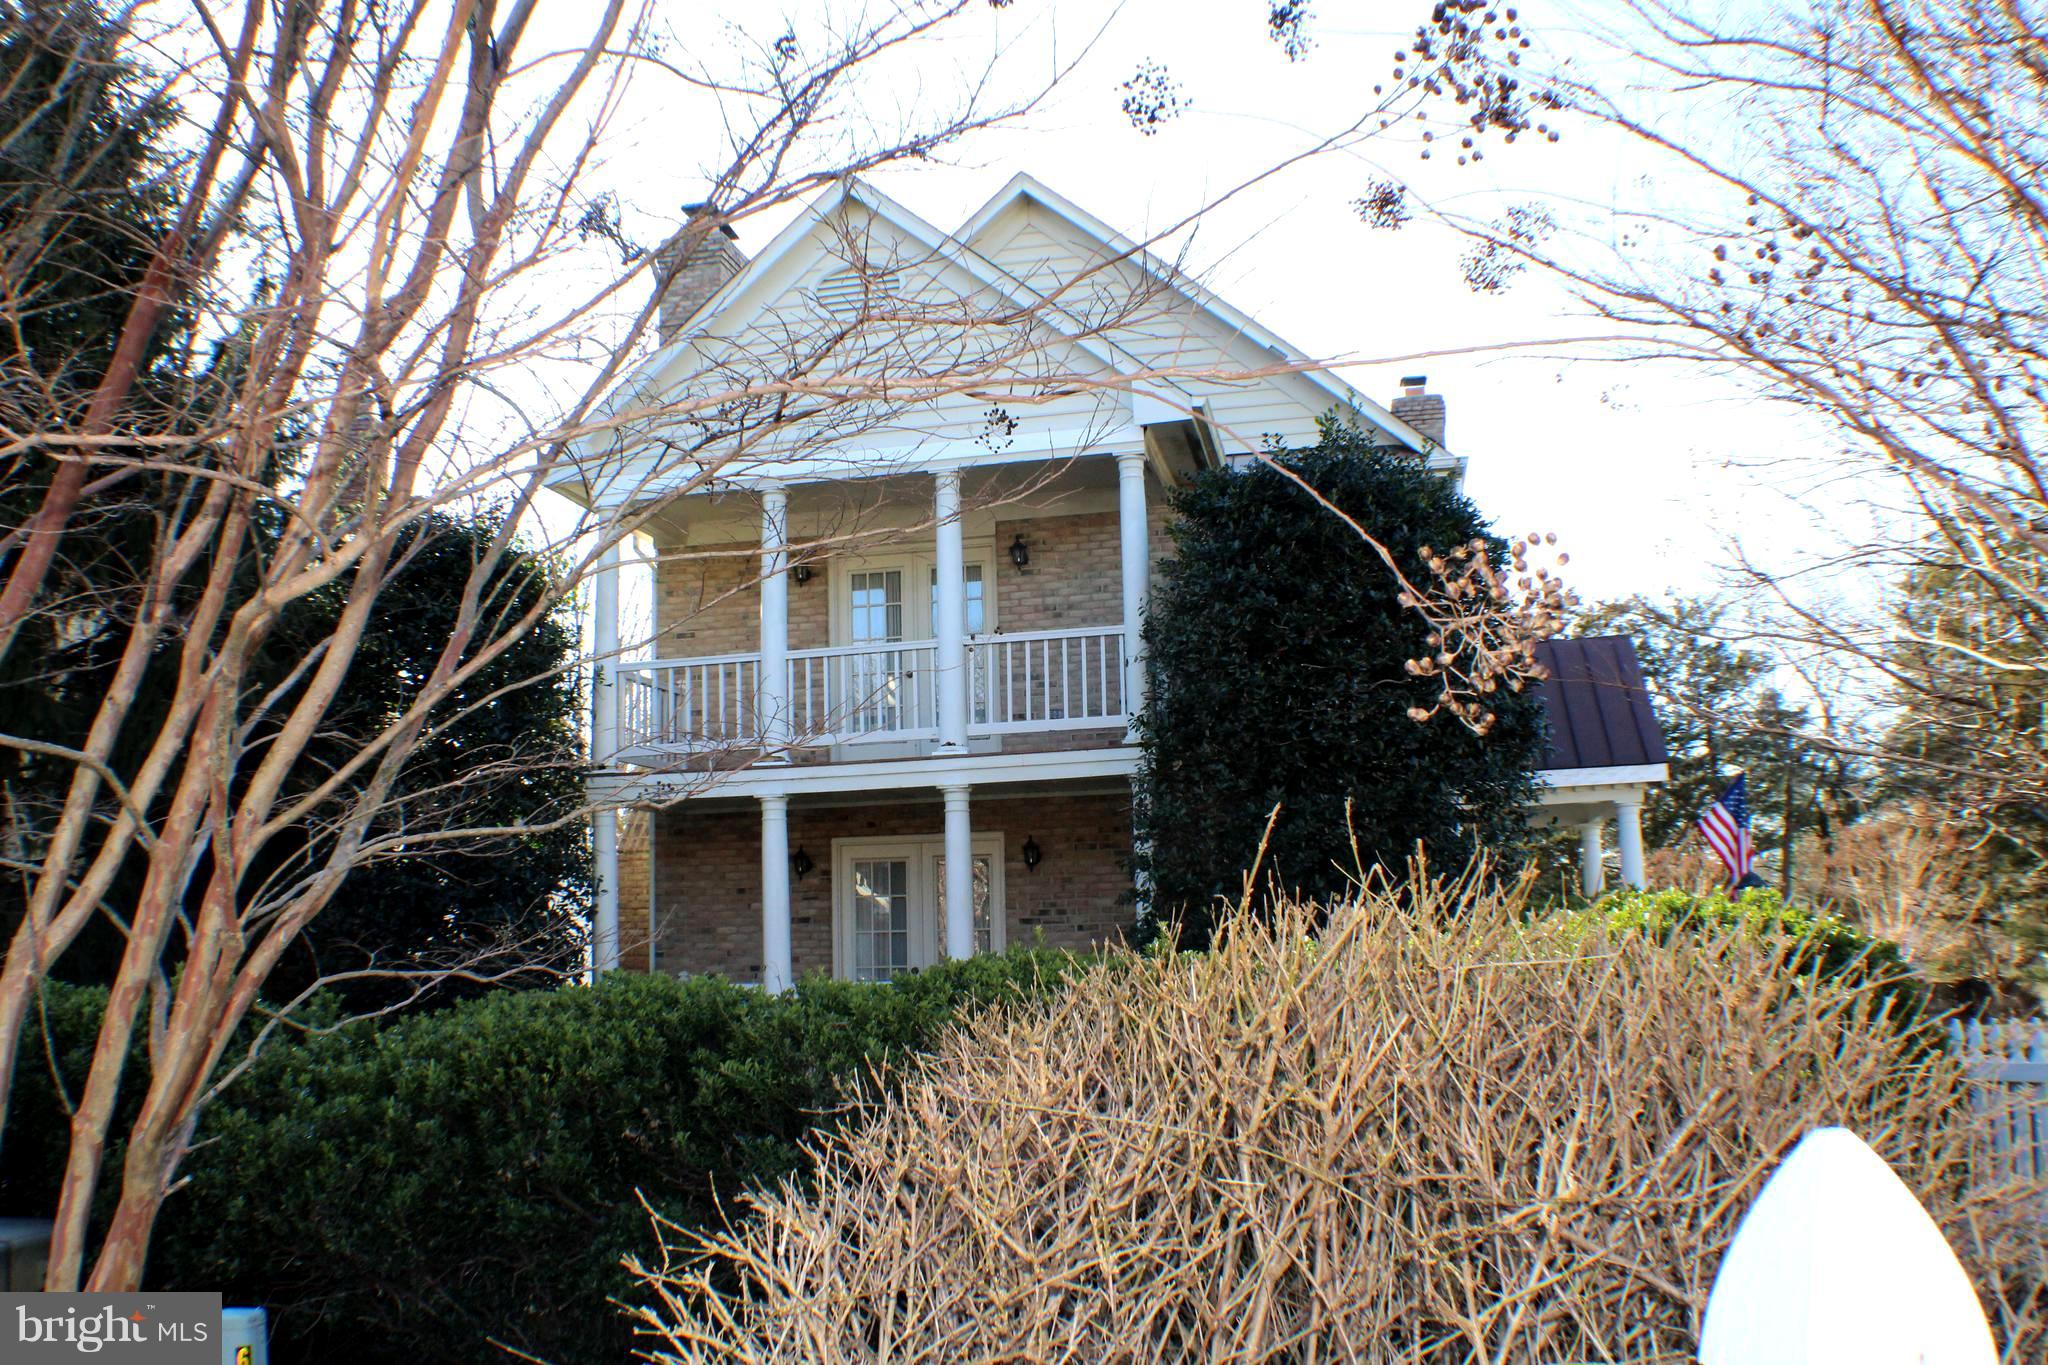 Price reduced $25,000! Walk to Metro and Springfield Mall from this beautifully maintained Colonial in the Southern Tradition of Charleston! Need to close in 30 days? We'll work with you to make sure it happens!  New carpet just installed! Enjoy the professionally landscaped setting, the white  fenced English front garden and the double front porches accessed from the Living Room or Master Bedroom.  There is a side porch for driveway access and a private rear Trex deck for casual relaxation. This home is the third largest property in the New Charleston Collection. Inside, please find a spacious and open 3-level floor plan (2,700 sq ft)  with living room and fireplace adjacent to a dining area which then leads to a large breakfast and family room combo with yet another fireplace. There are three bedroom upstairs - French doors to the balcony from the MBR with a walk-in closet and large bath/shower combo. The fourth bedroom and third full bath is in the lower level as part of an in-law suite and a family room with fireplace. Parking and nearby points of commuting interest- Walking distance to new Springfield Town Center and Franconia,Springfield Metro, Near new upcoming TSA Headquarters, just Four Metro stops to National Airport and Five Metro stops to upcoming Amazon Headquarters. Detached two car garage and extended driveway for more parking. Yes, some updates could be completed, but that is reflected in the price reduction. The house otherwise shows beautifully and is in move-in condition.